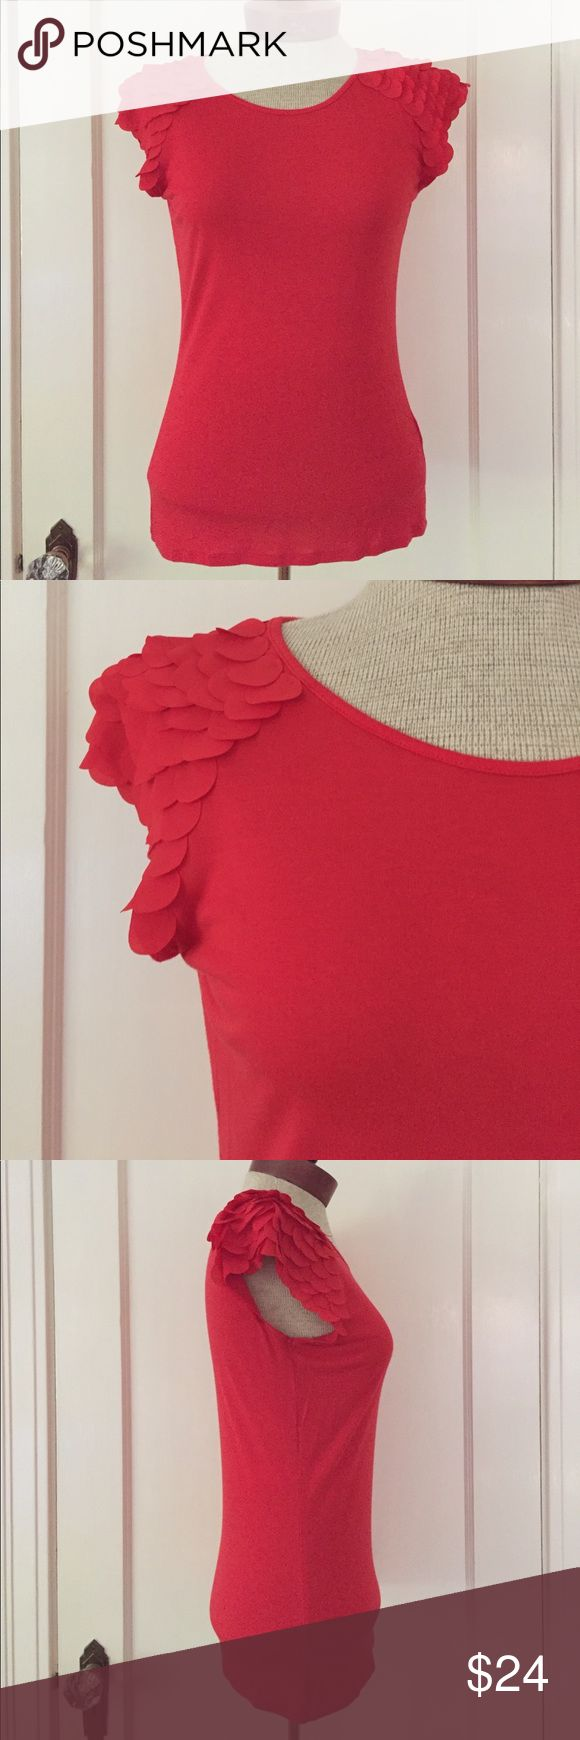 Ted Baker Tee Excellent used condition. Perfect. Ted Baker London Tops Tees - Short Sleeve